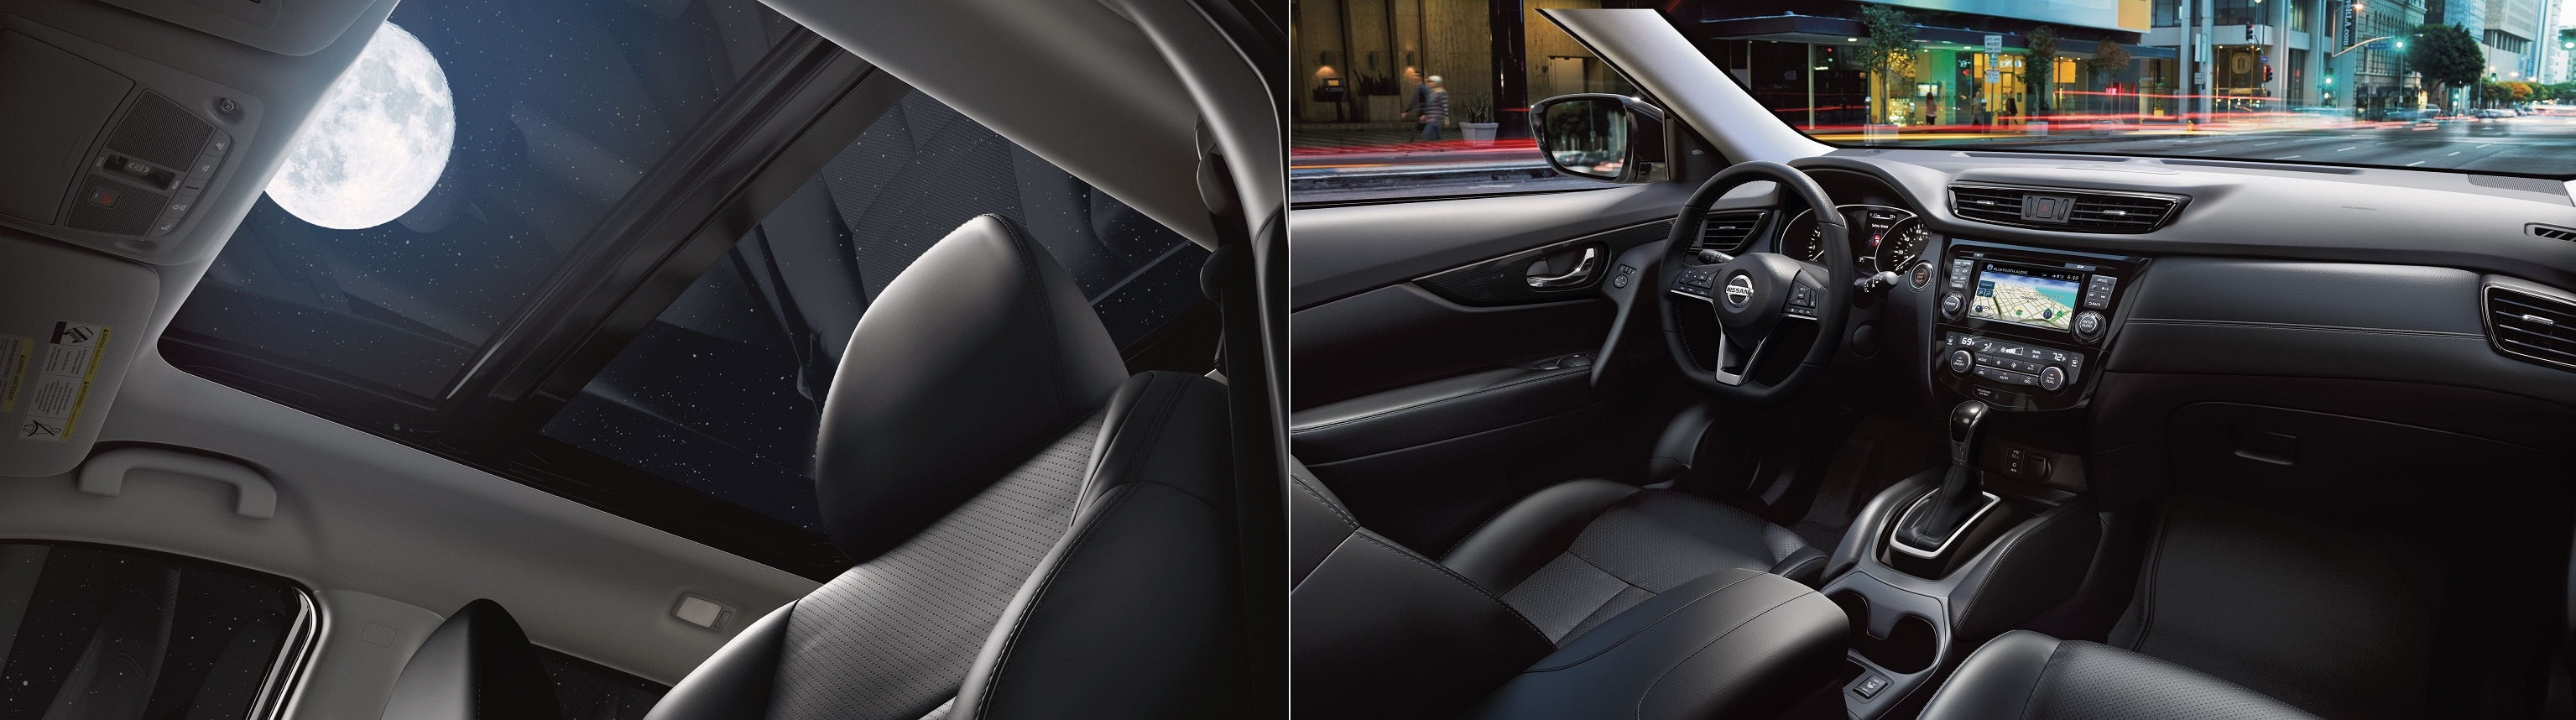 Interior Design of 2020 Nissan Rogue - Buy at Alta Nissan located in Richmond Hill